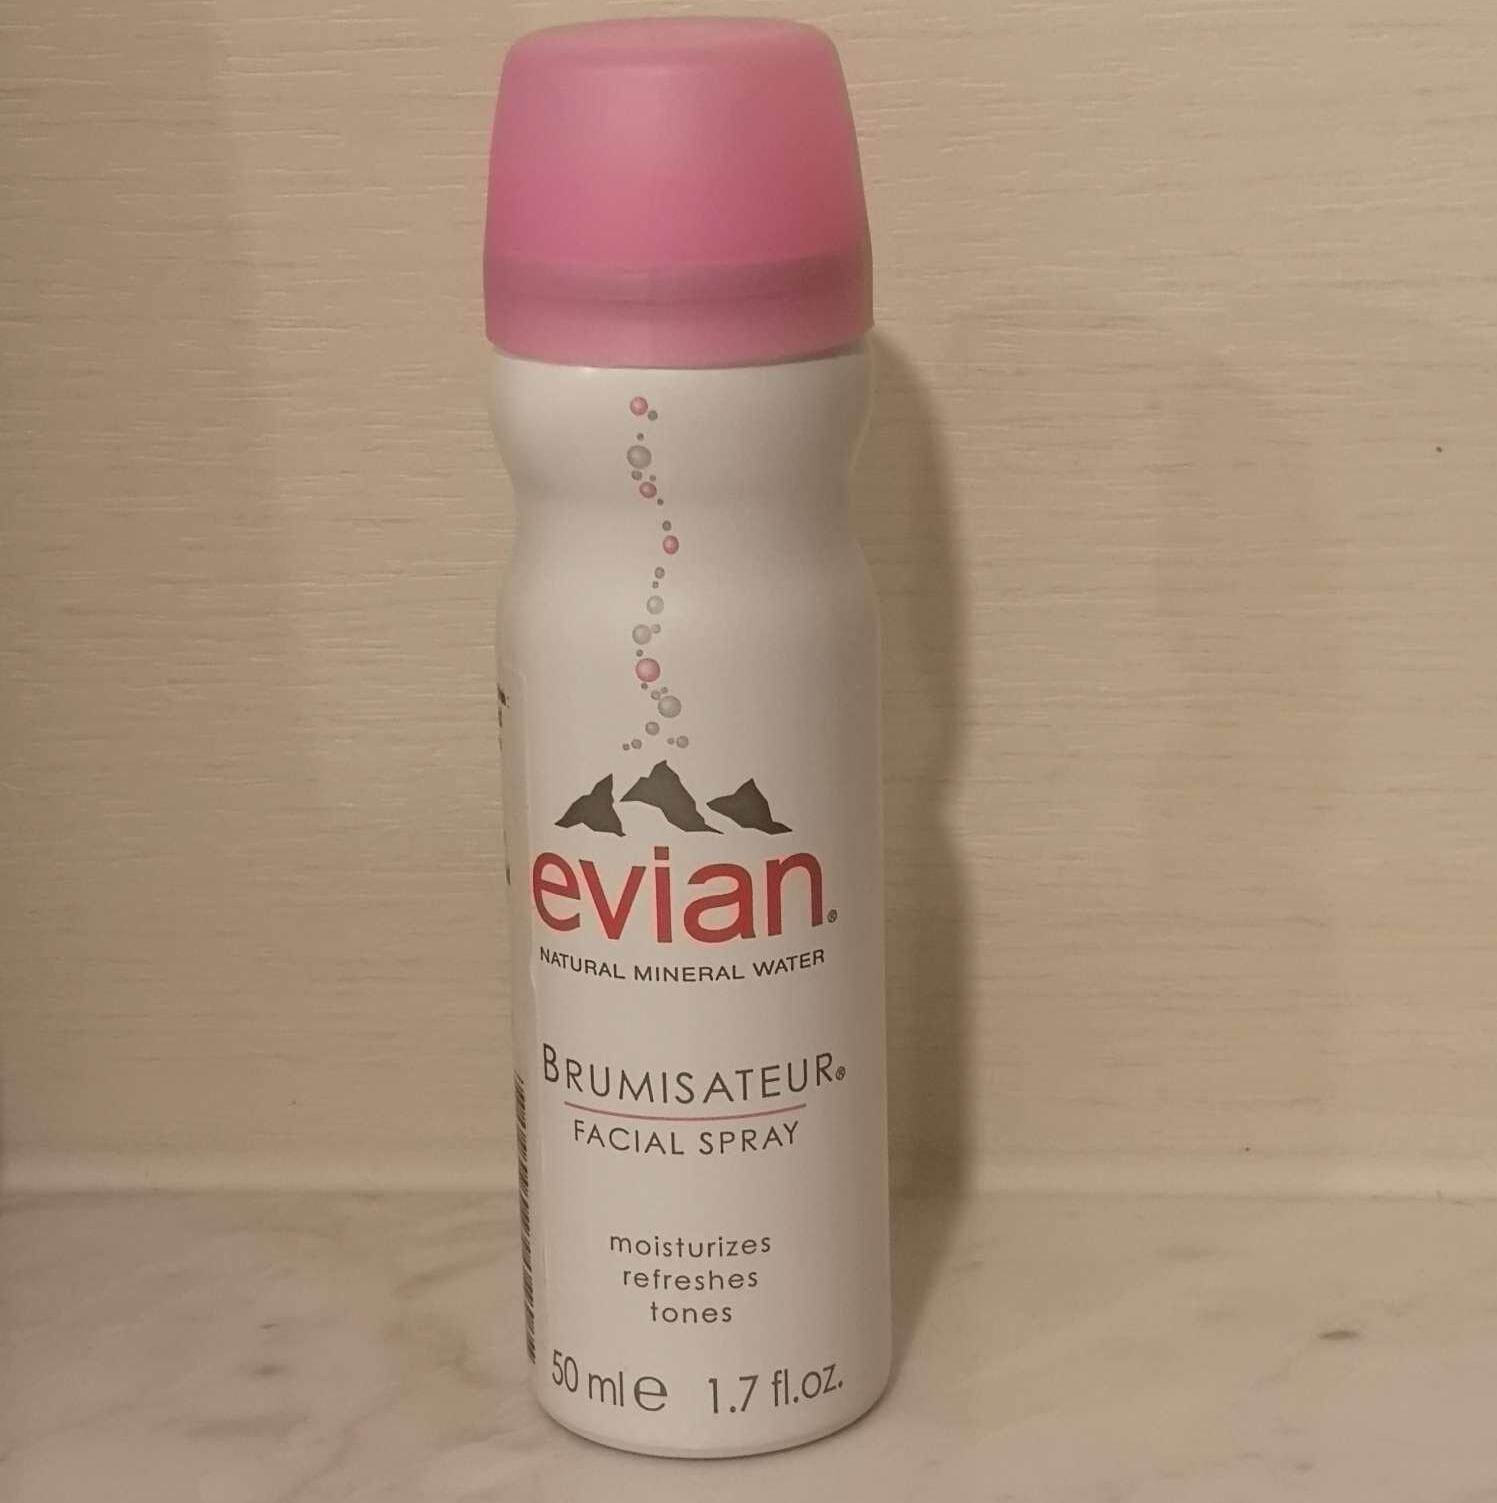 Evian Buy At Best Price In Malaysia Facial Spray 300 Ml Brumisateur 50ml